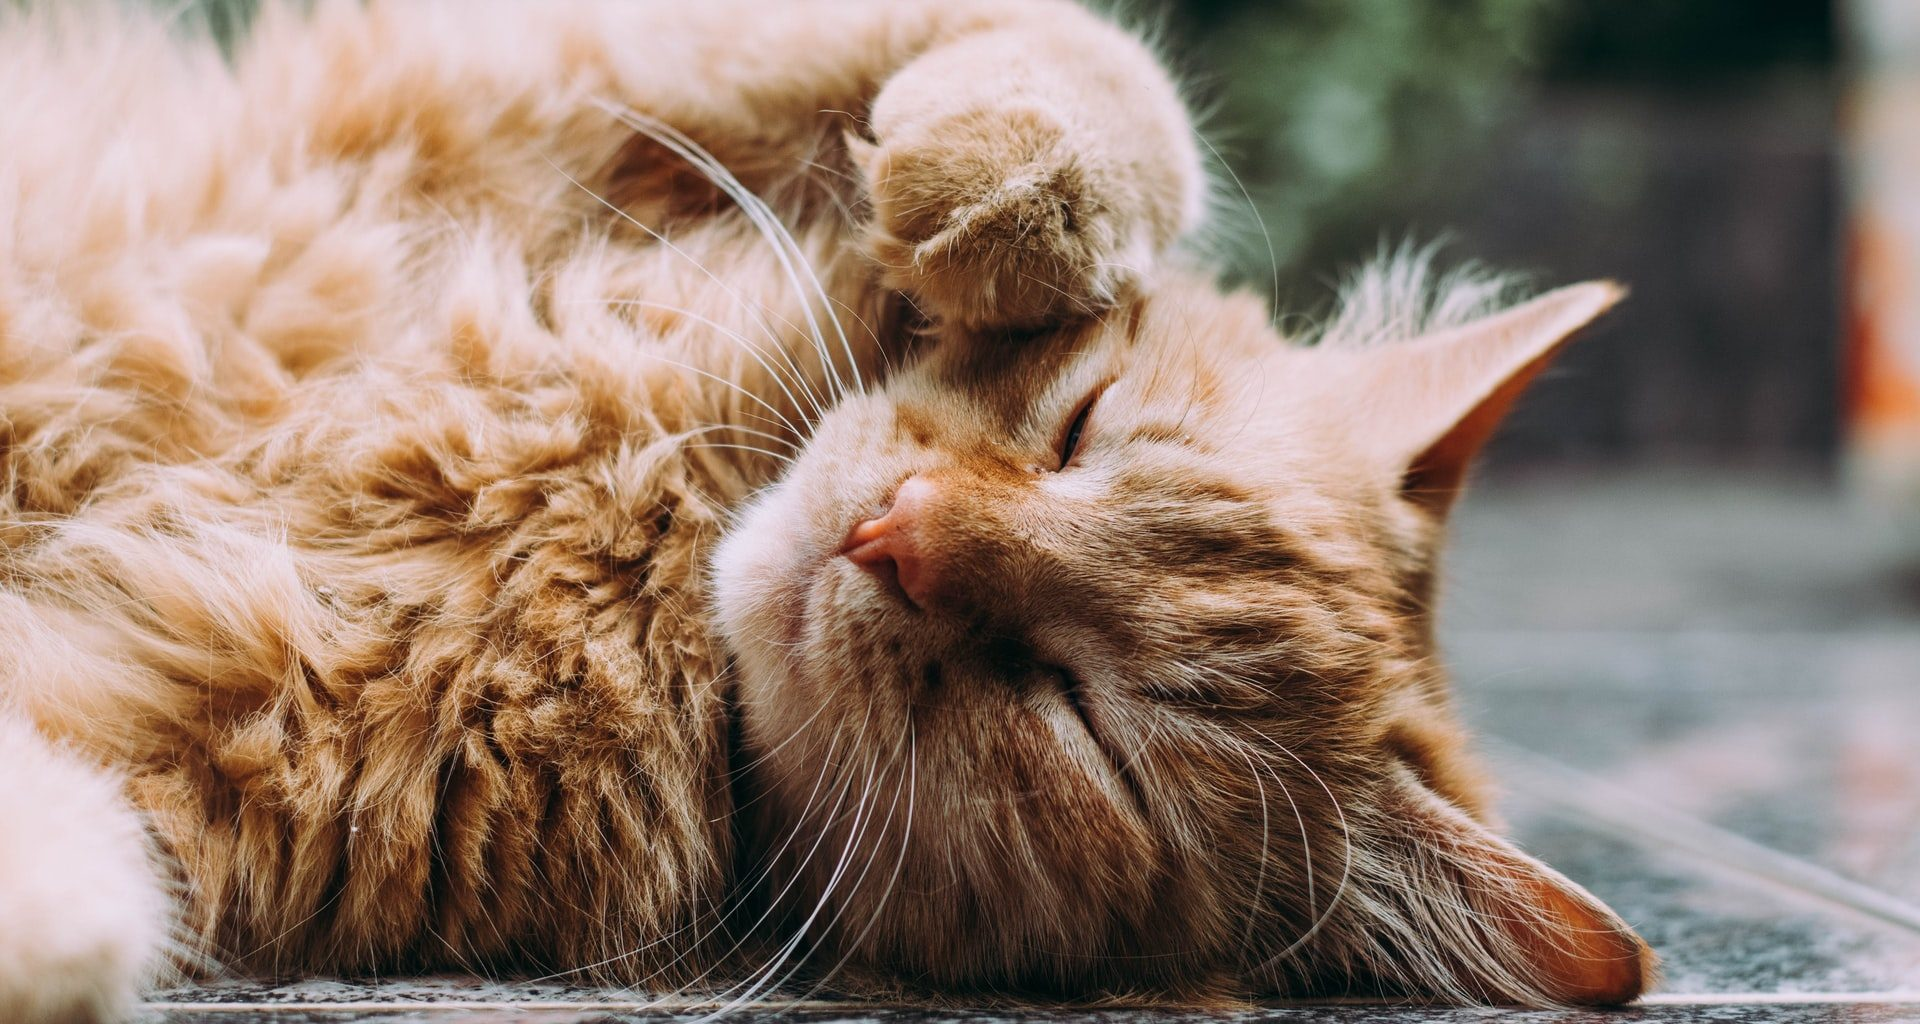 Best CBD Oil for Cats - Featured Image